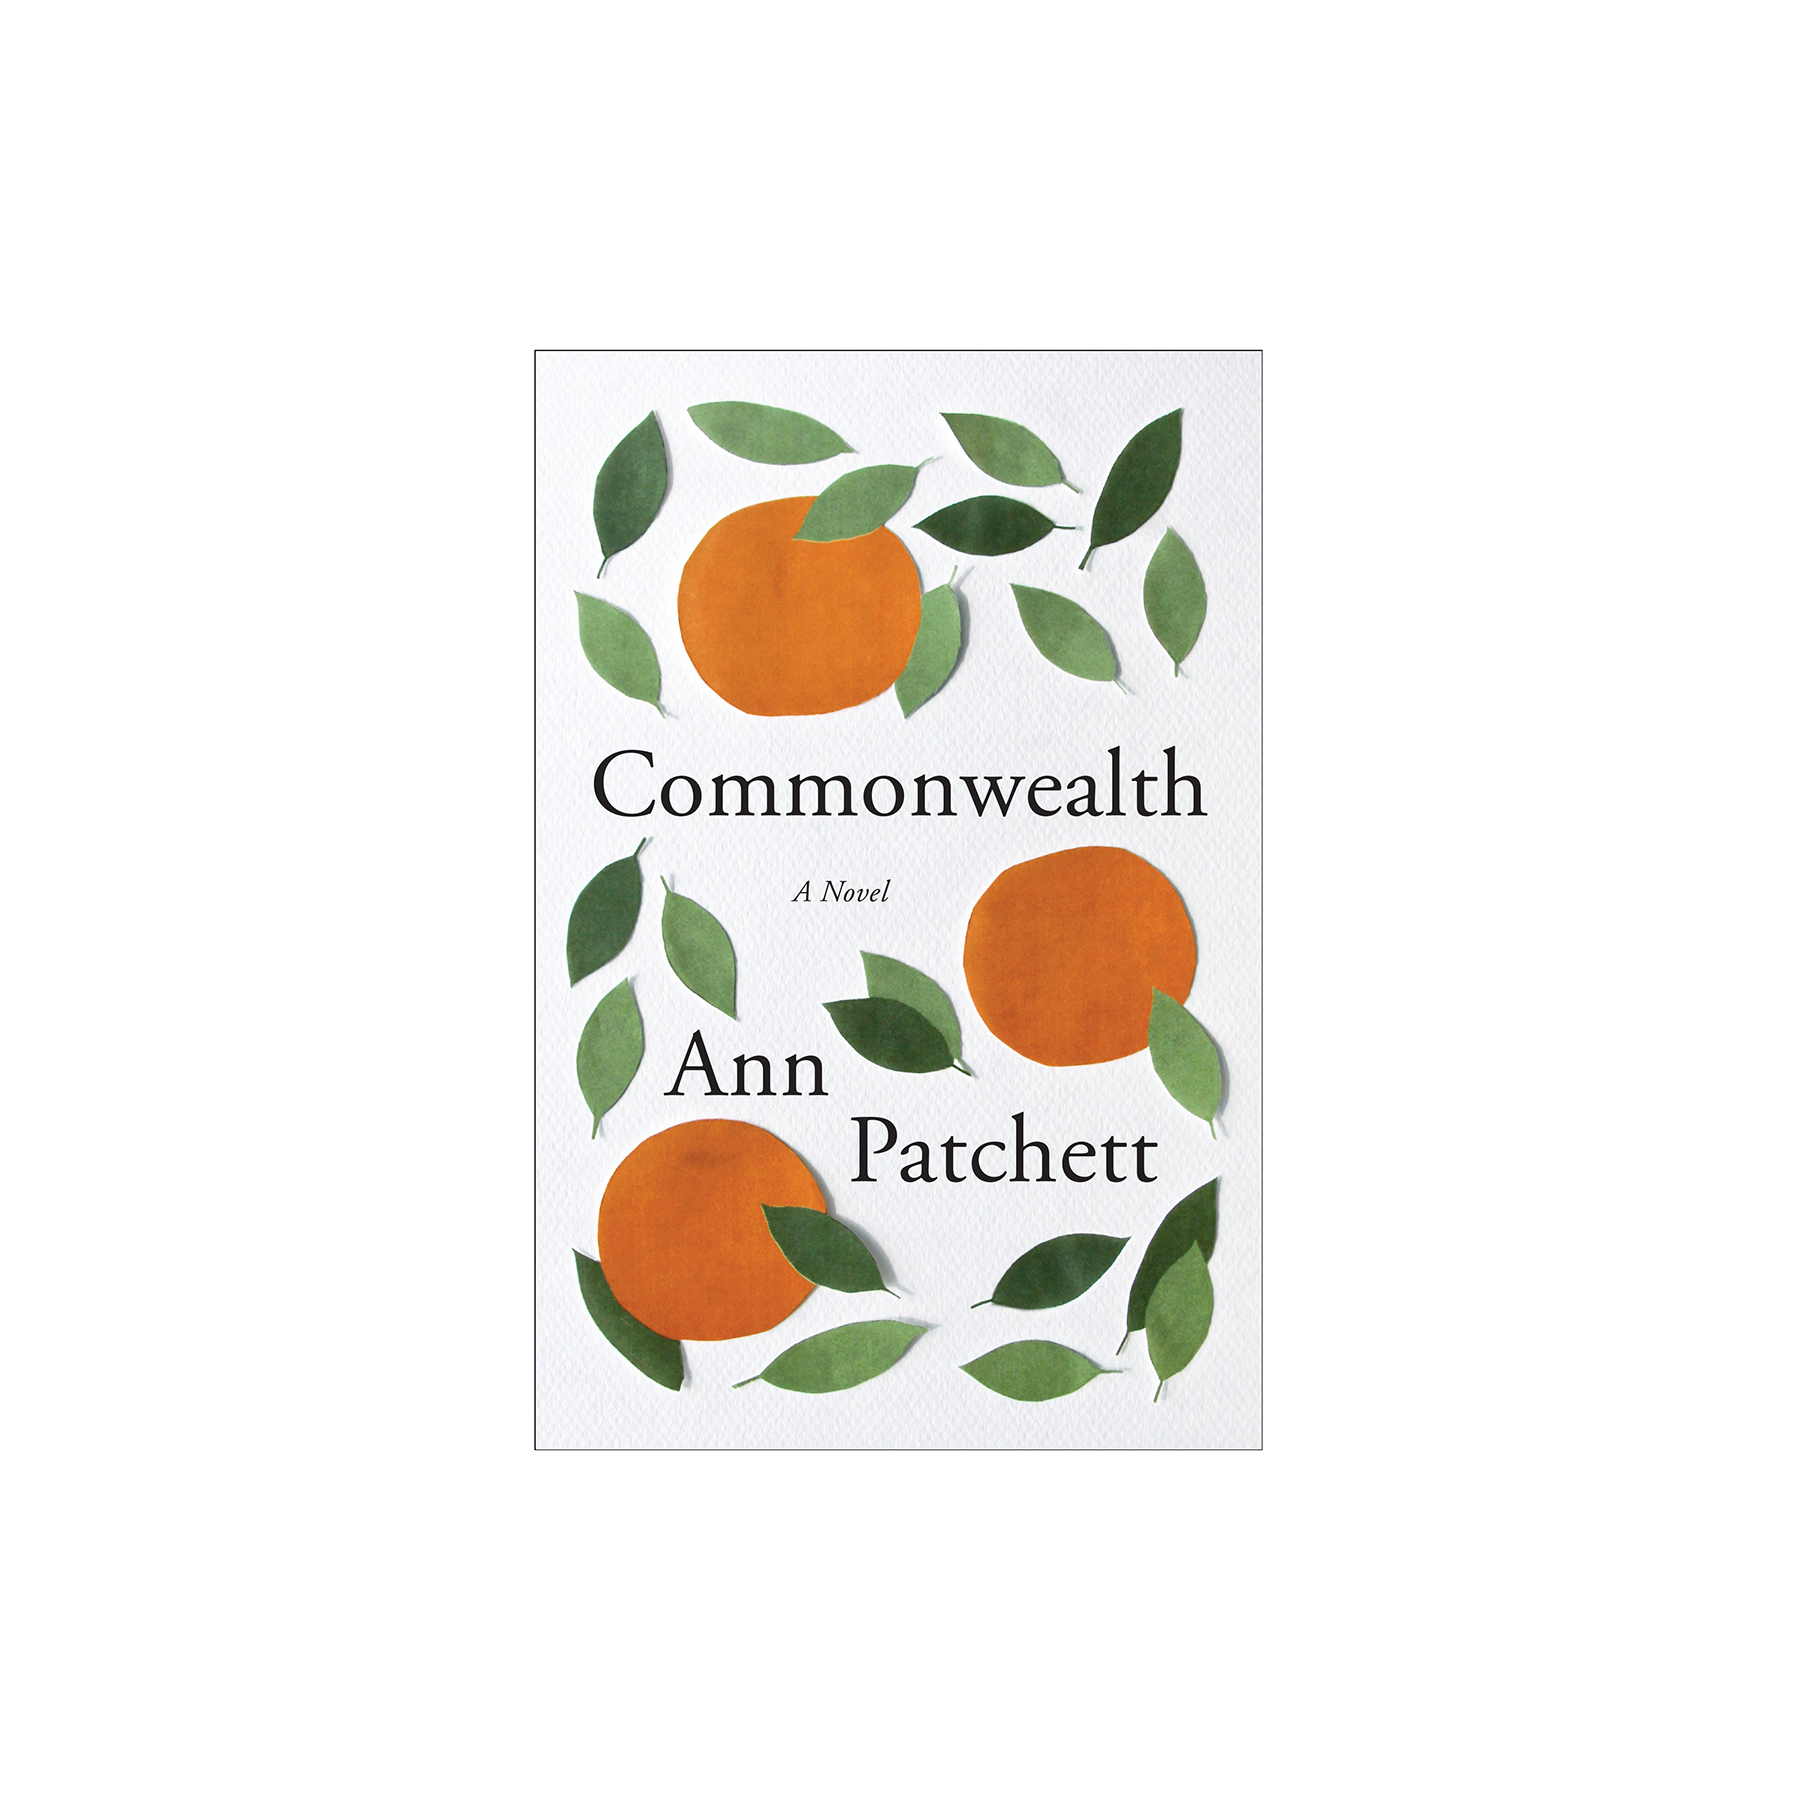 Commonwealth, by Ann Patchett